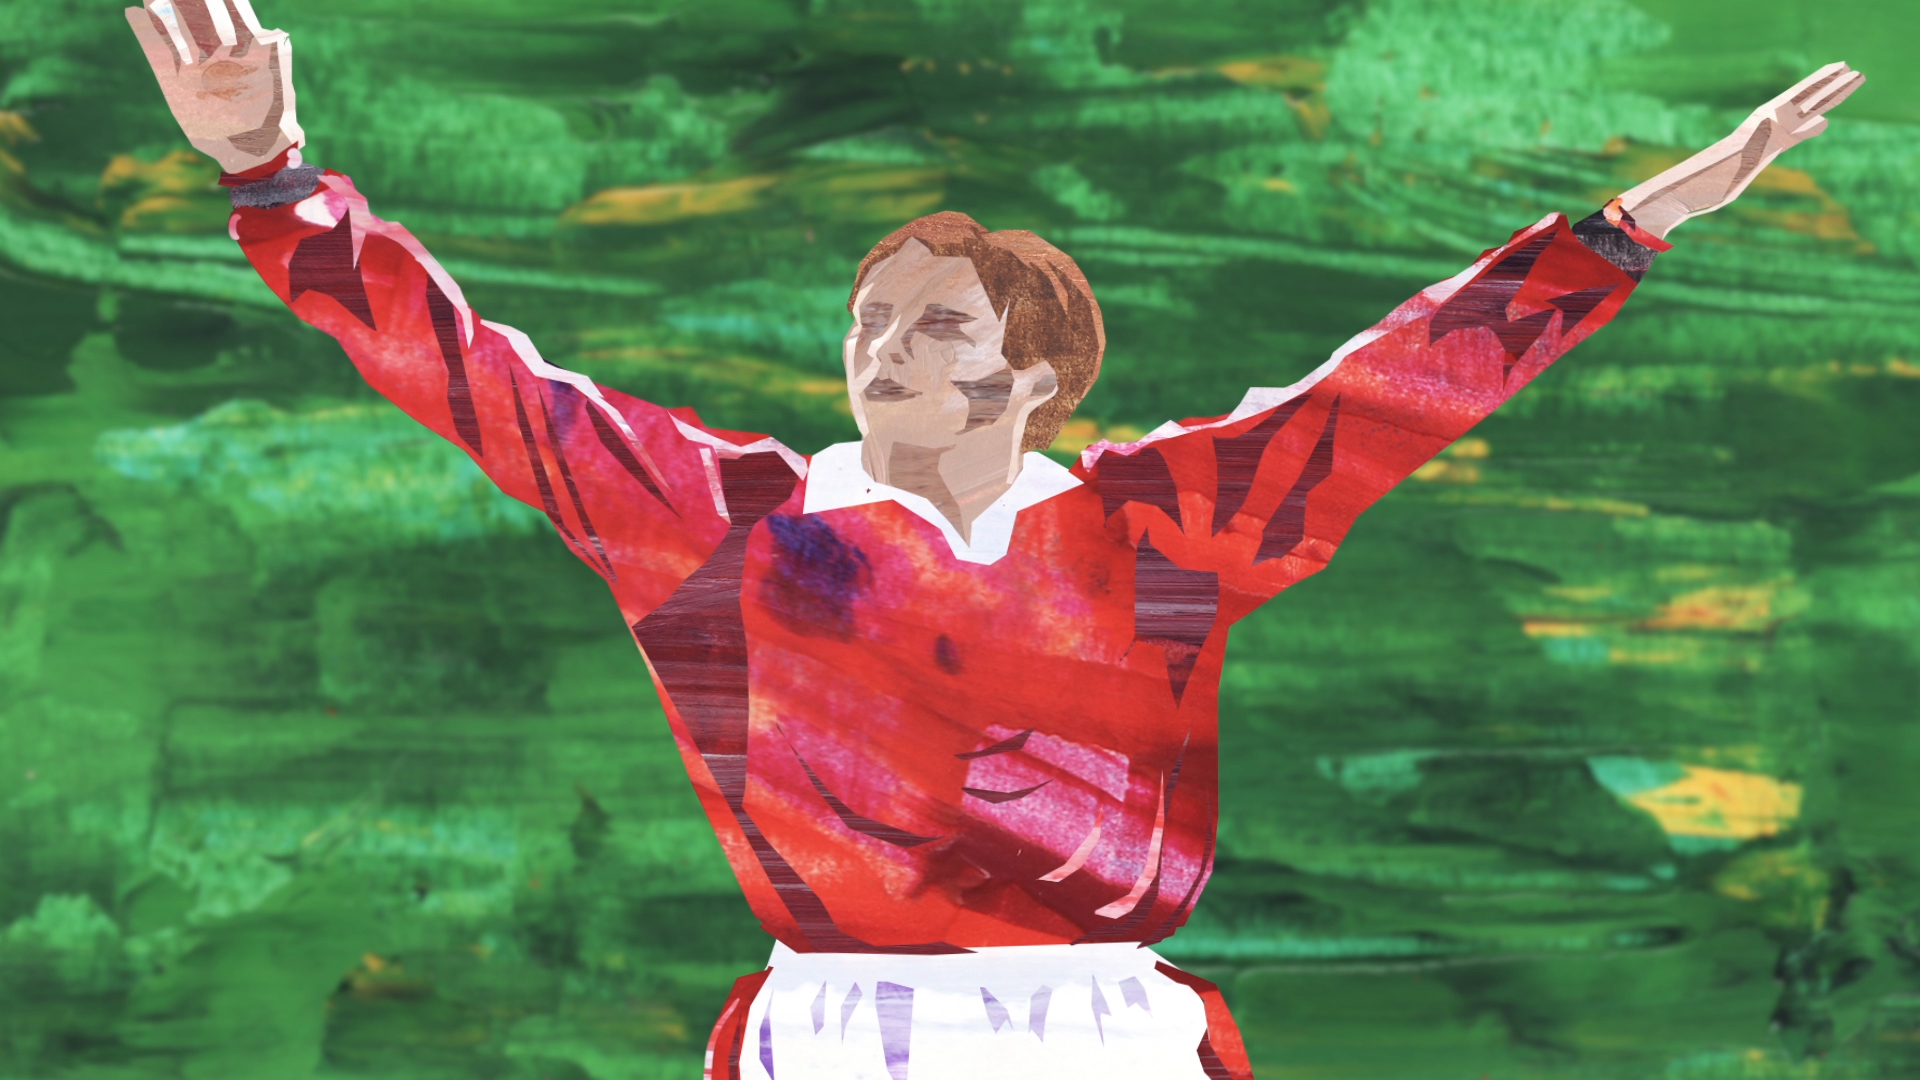 Beckham all painted up like